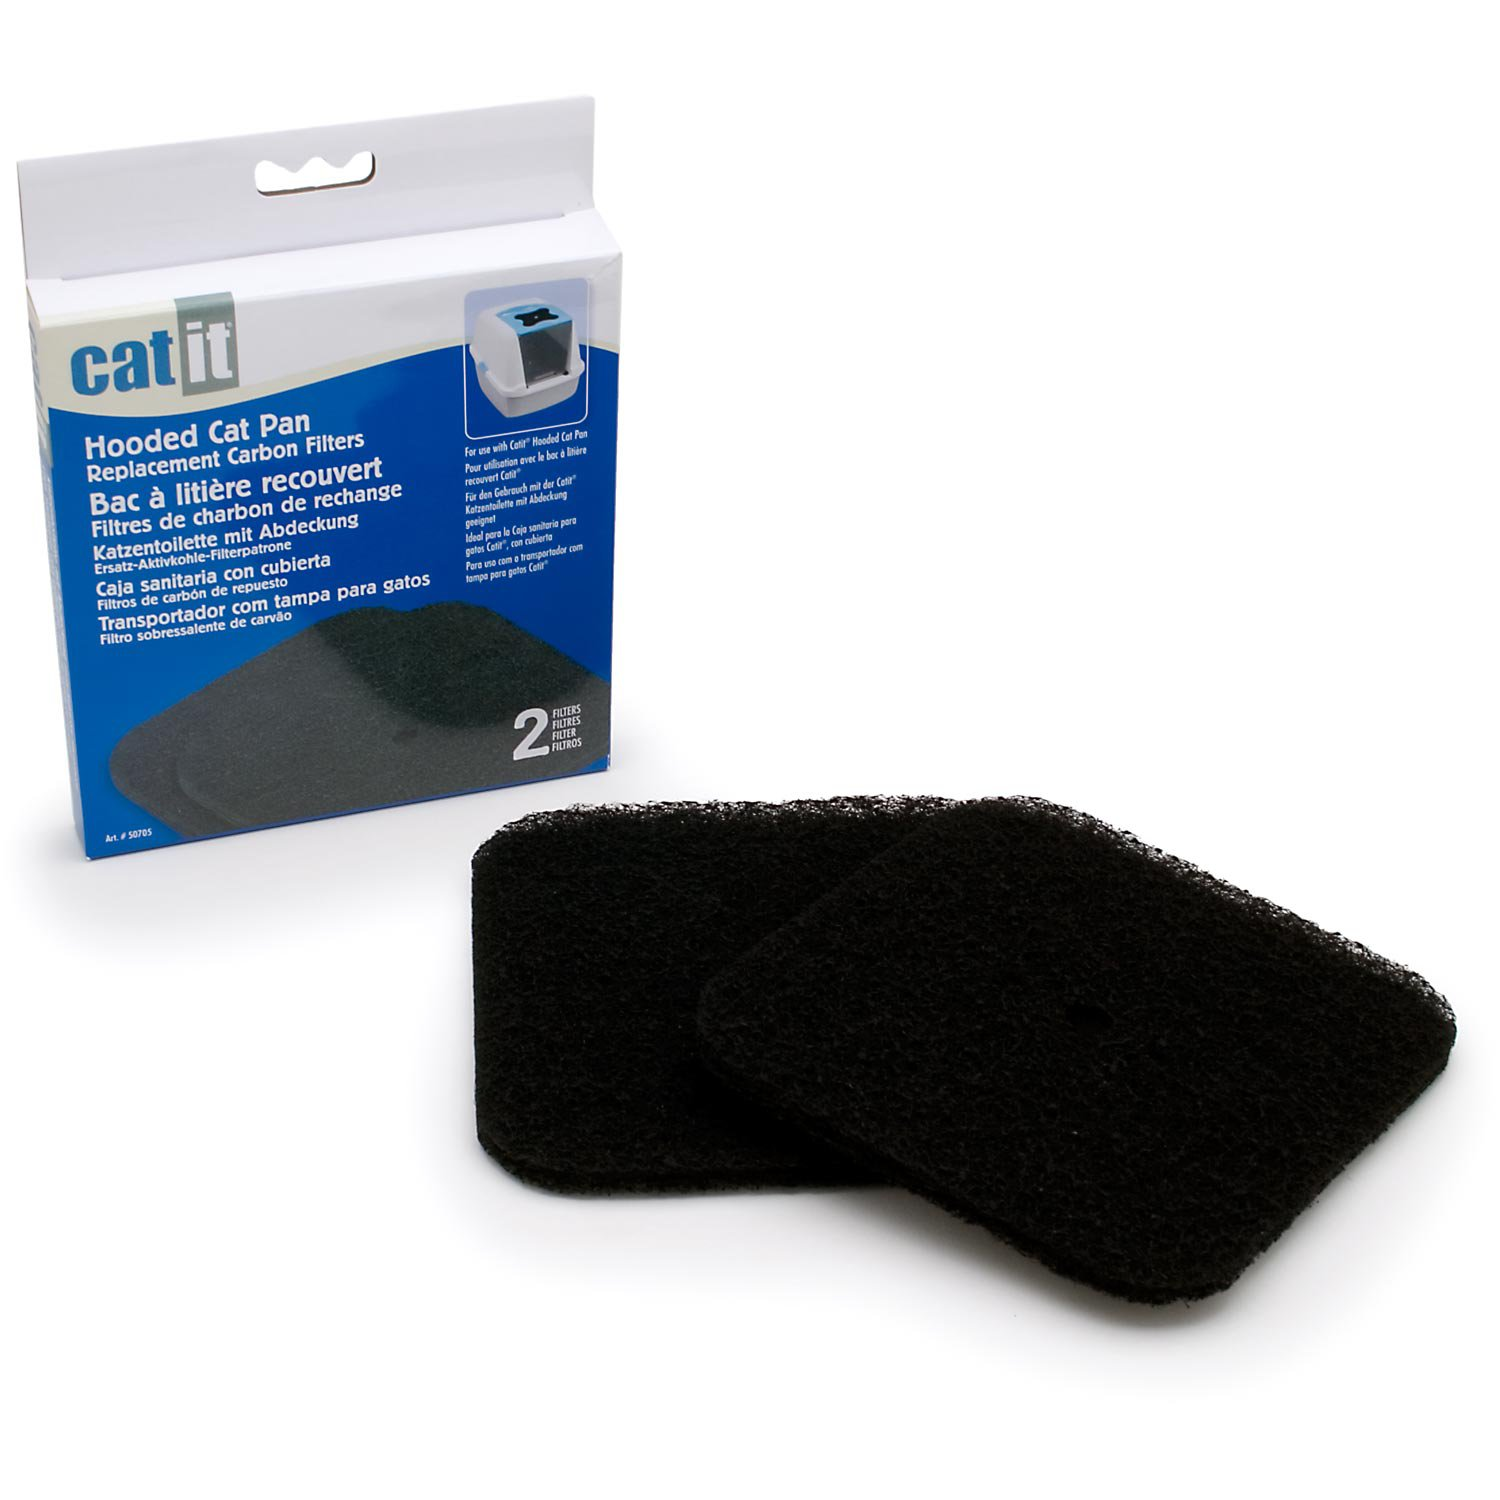 Hagen CatIt Cat Litter Box Replacement Carbon Filters